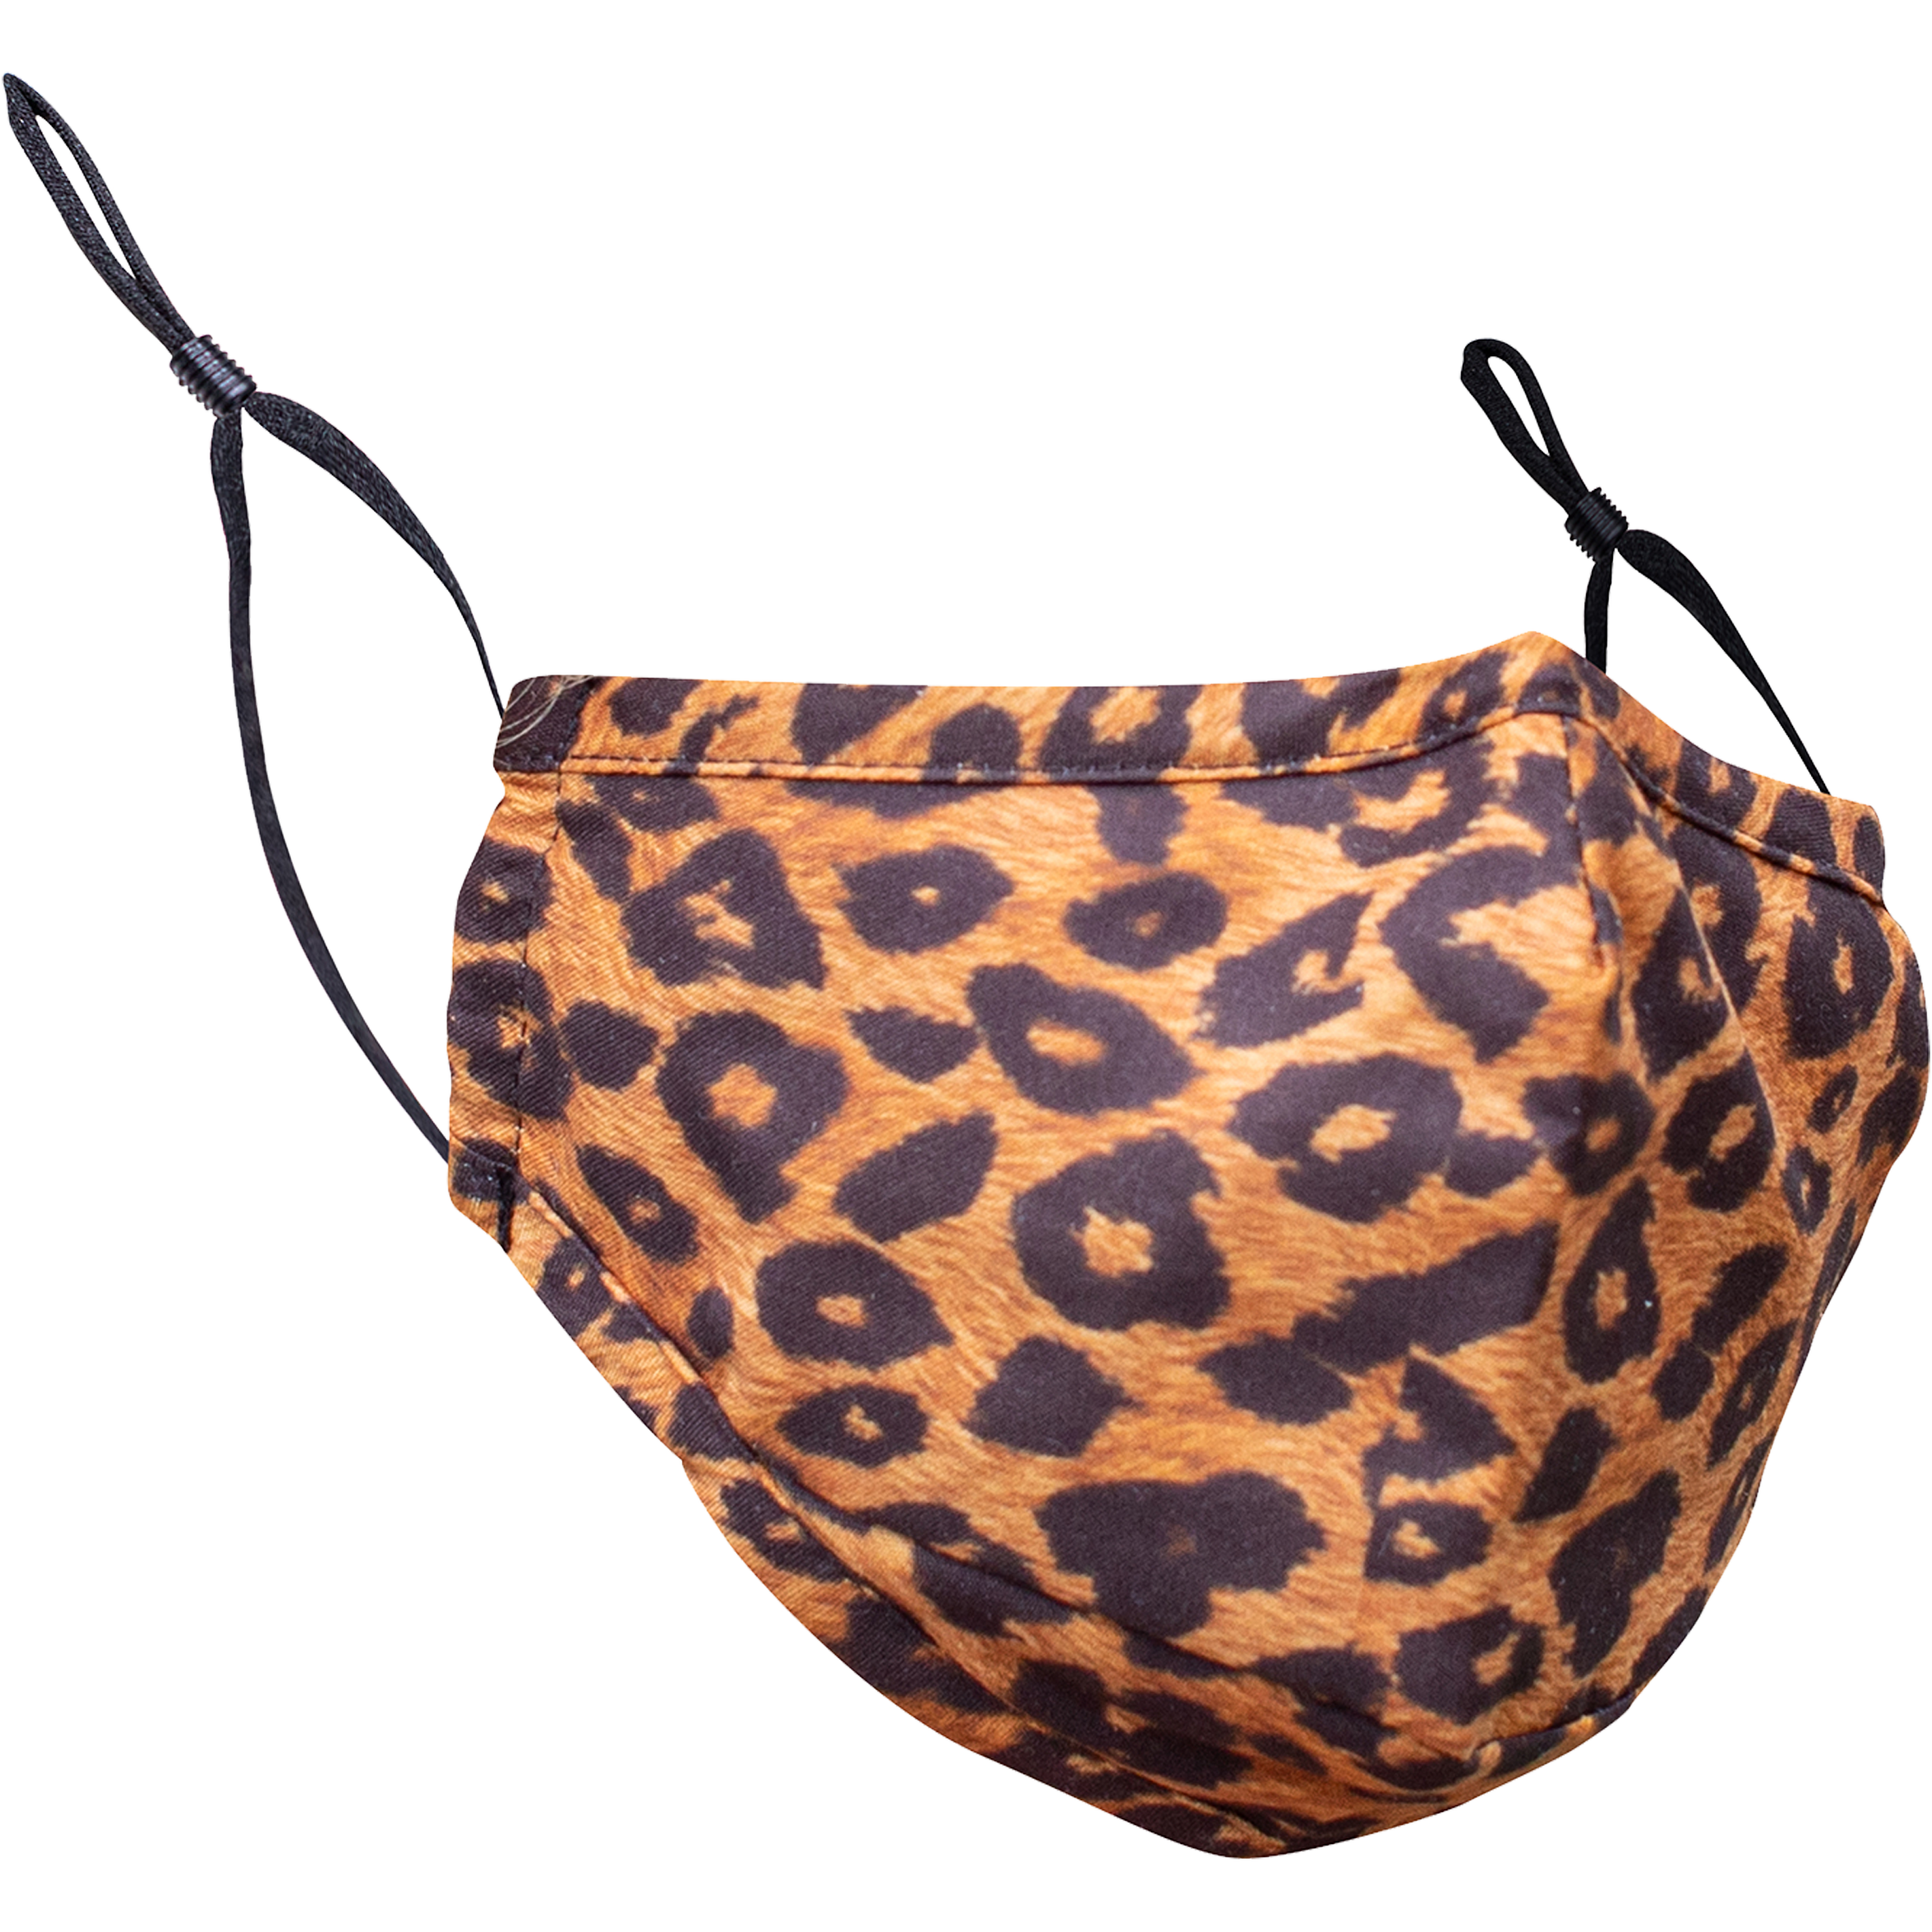 Big Bad Leopard 3-Ply Reusable Fabric Face Masks with Carbon Filter Insert Pocket | Pack of 2